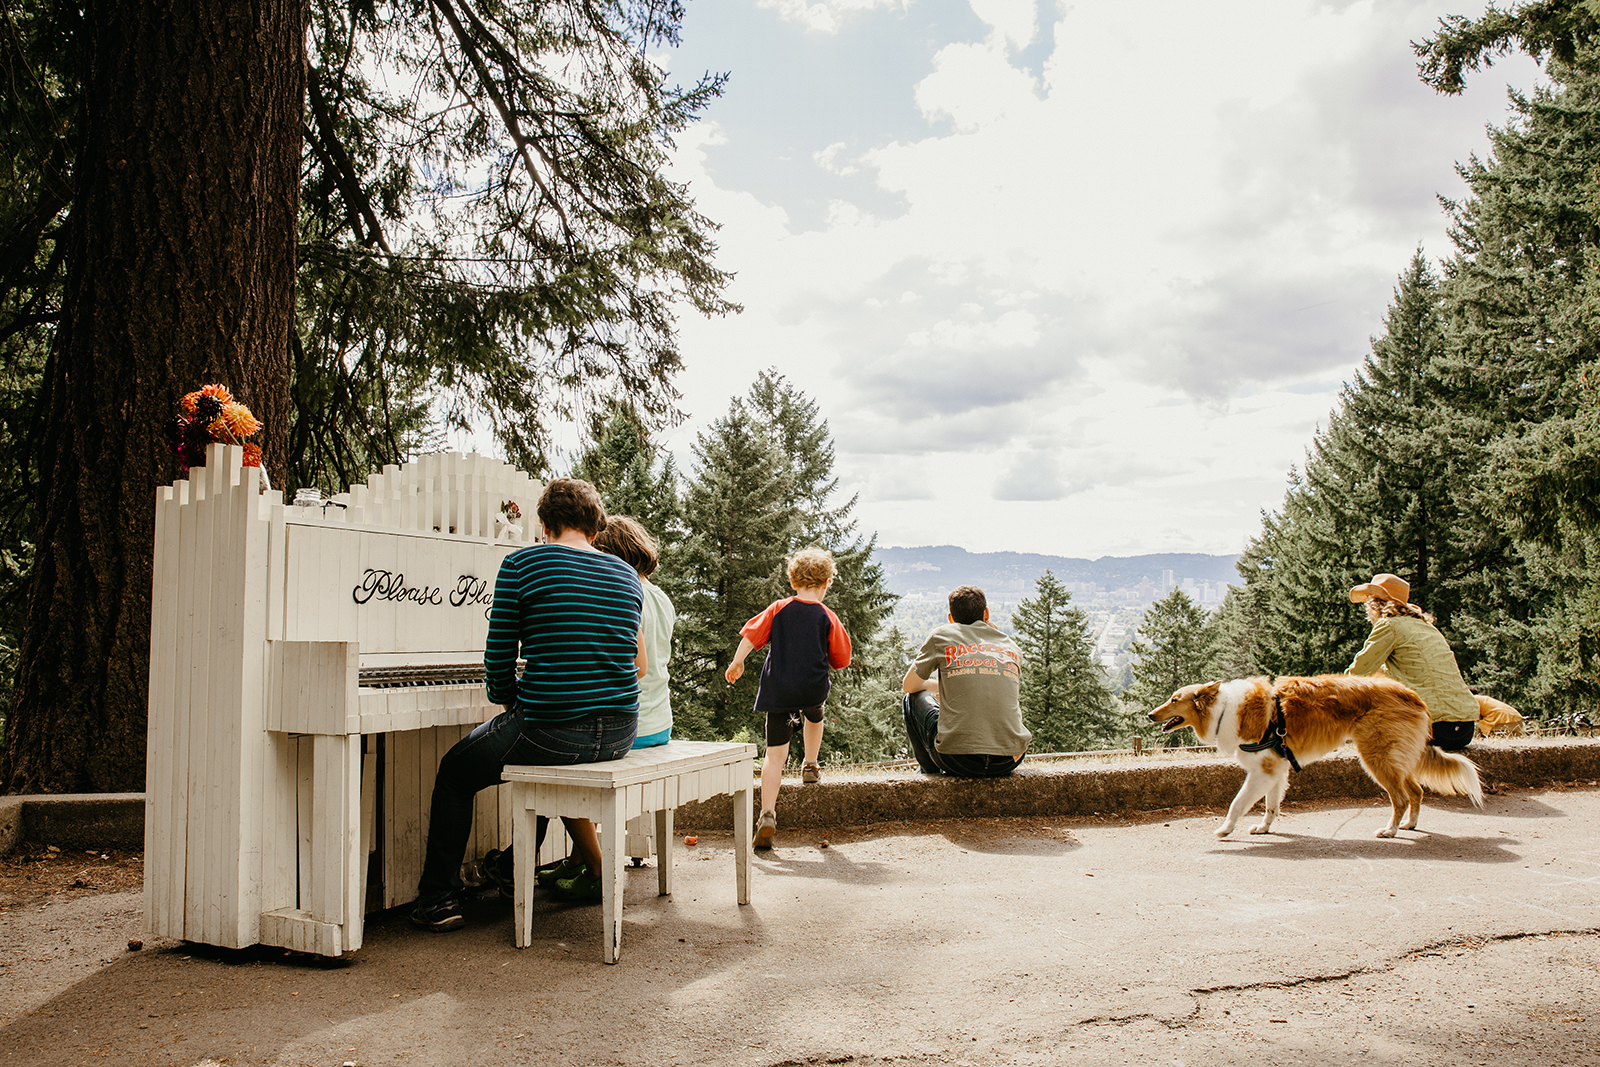 family at mount tabor park plays piano and looks at view with dogs